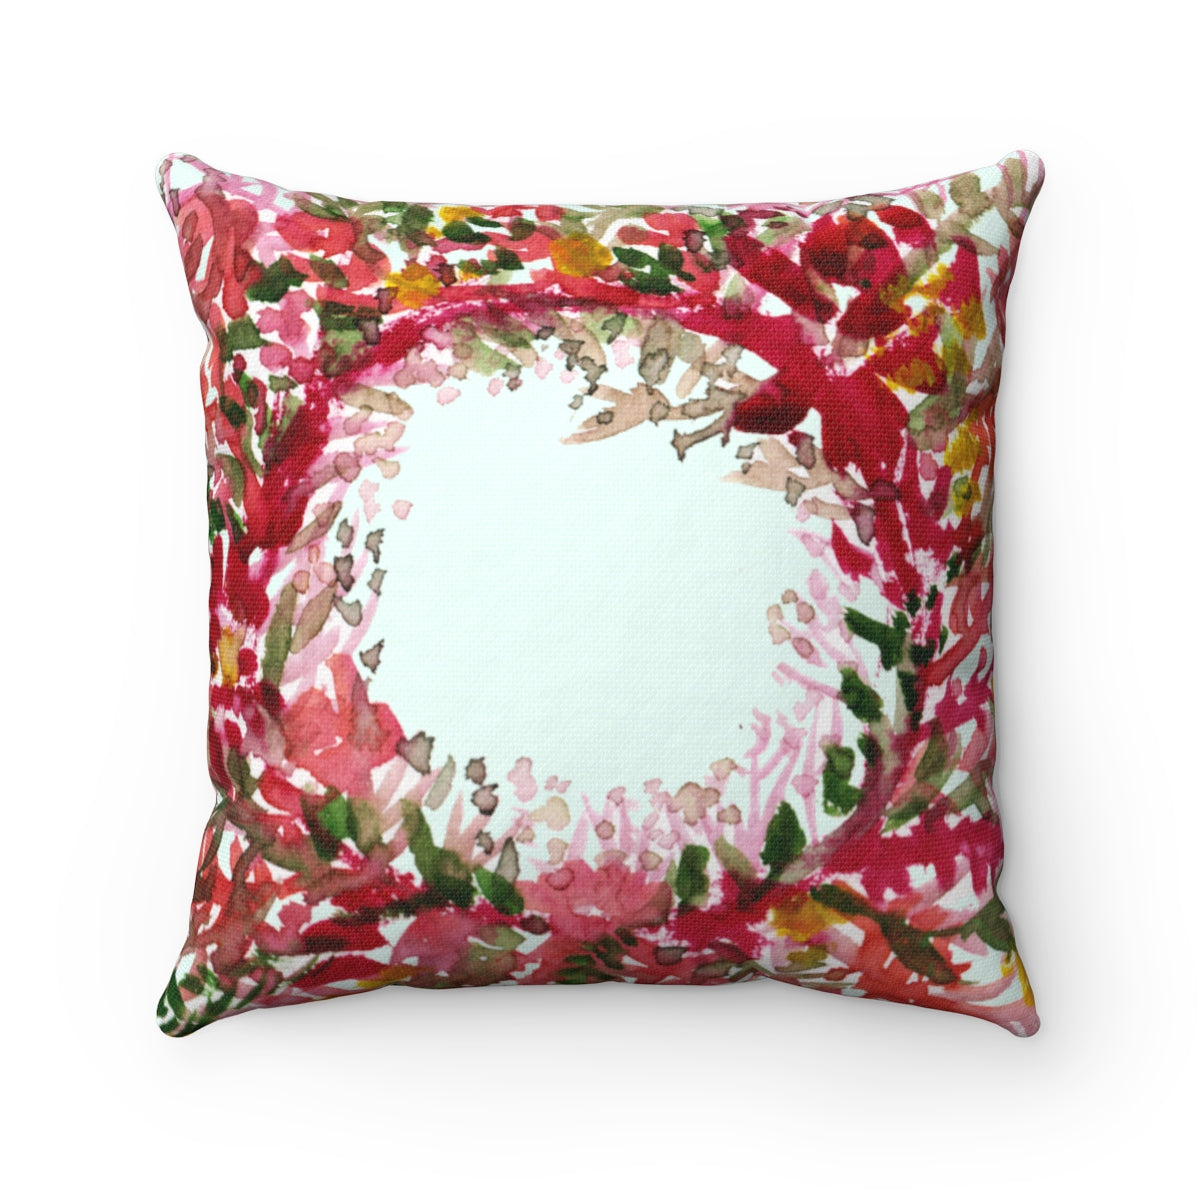 Cute Red and Yellow Fall Floral Wreath Spun Polyester Square Pillow - Made in USA-Pillow-14x14-Heidi Kimura Art LLC